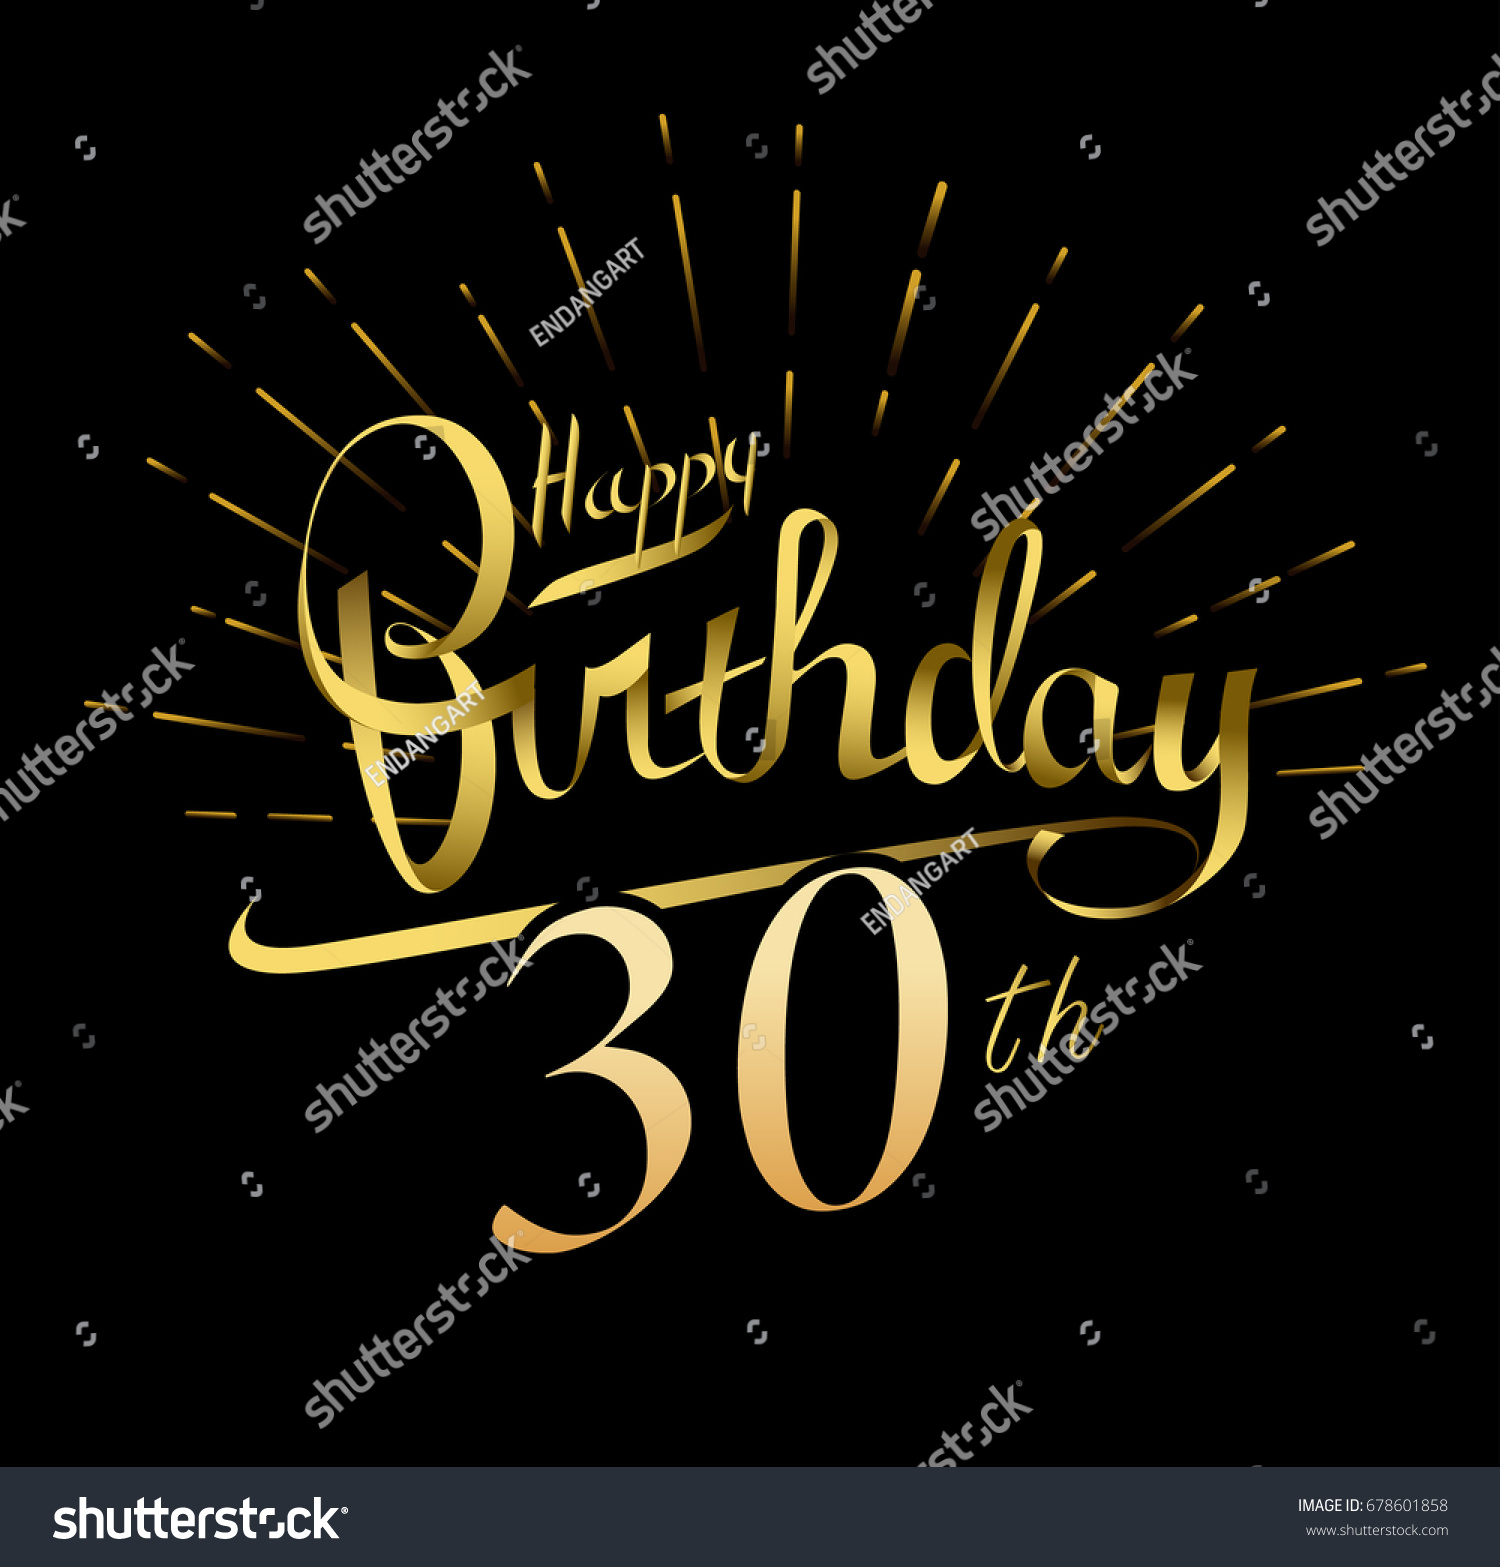 30th Happy Birthday logo. Beautiful greeting card poster with calligraphy Word gold fireworks. Hand